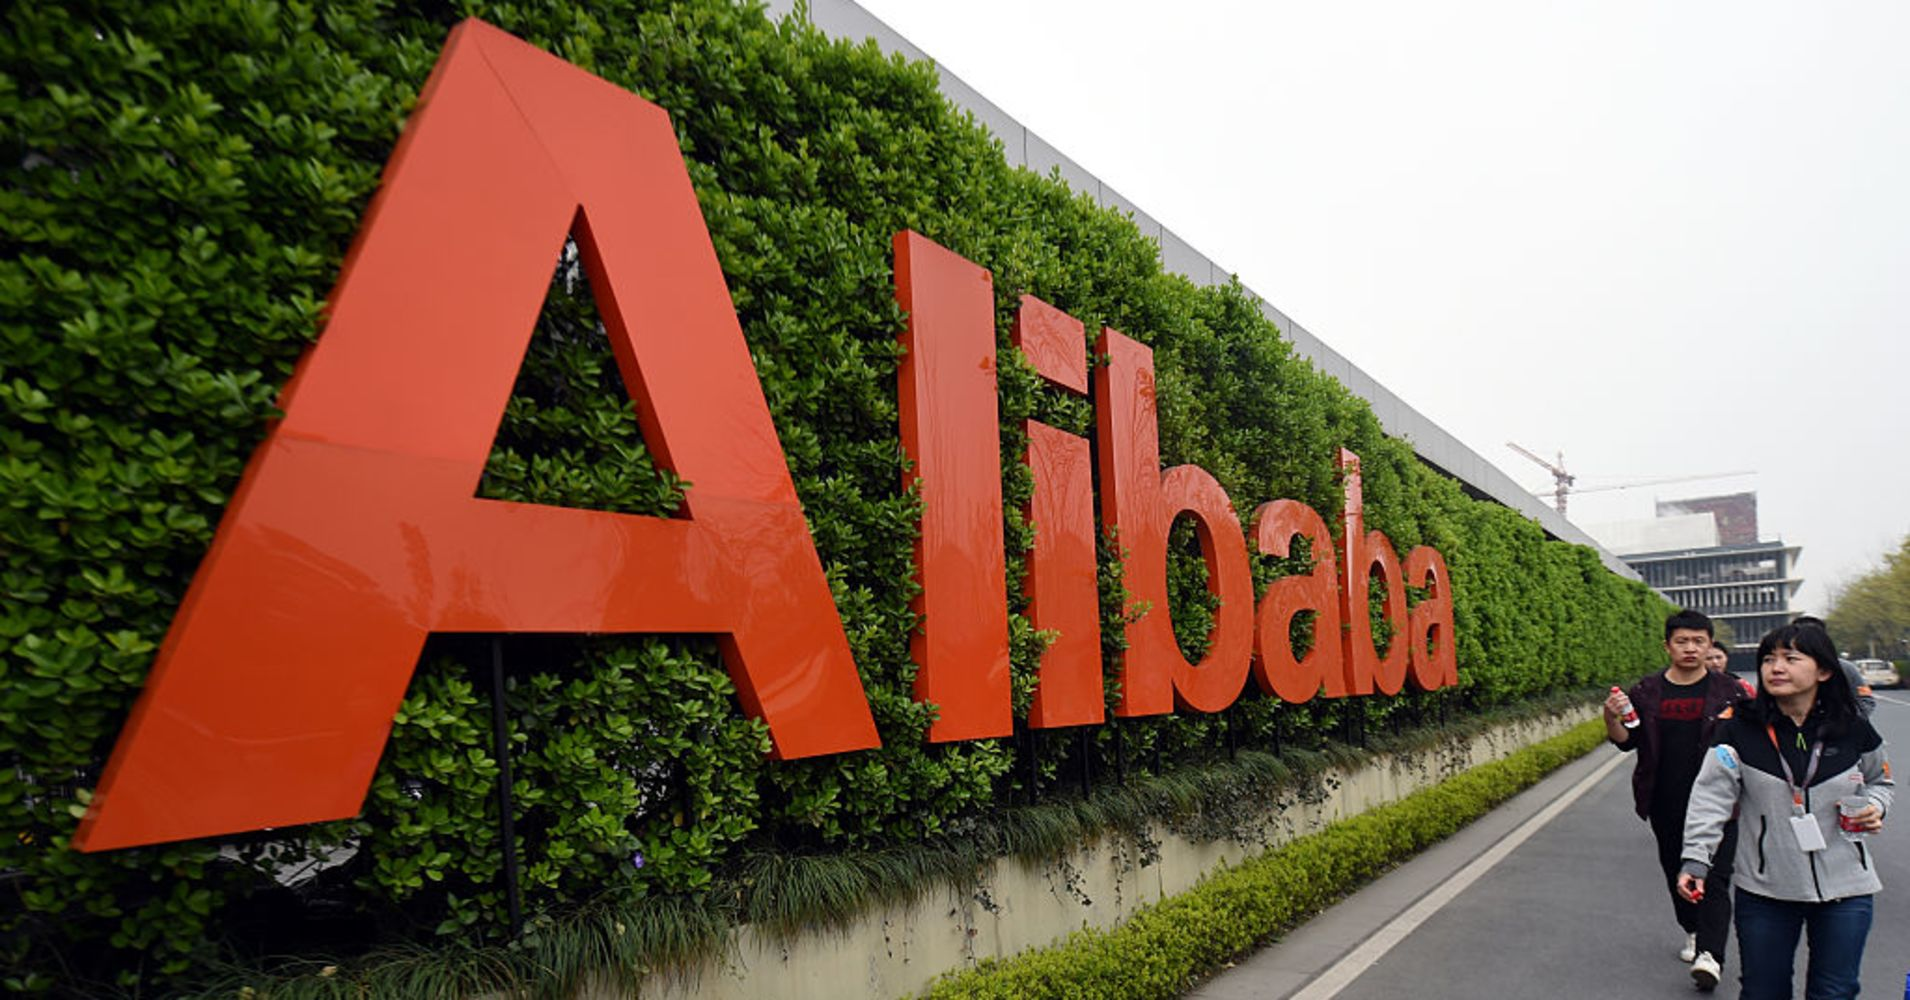 If you invested $1,000 in Alibaba when it went public, here's how much you'd have now